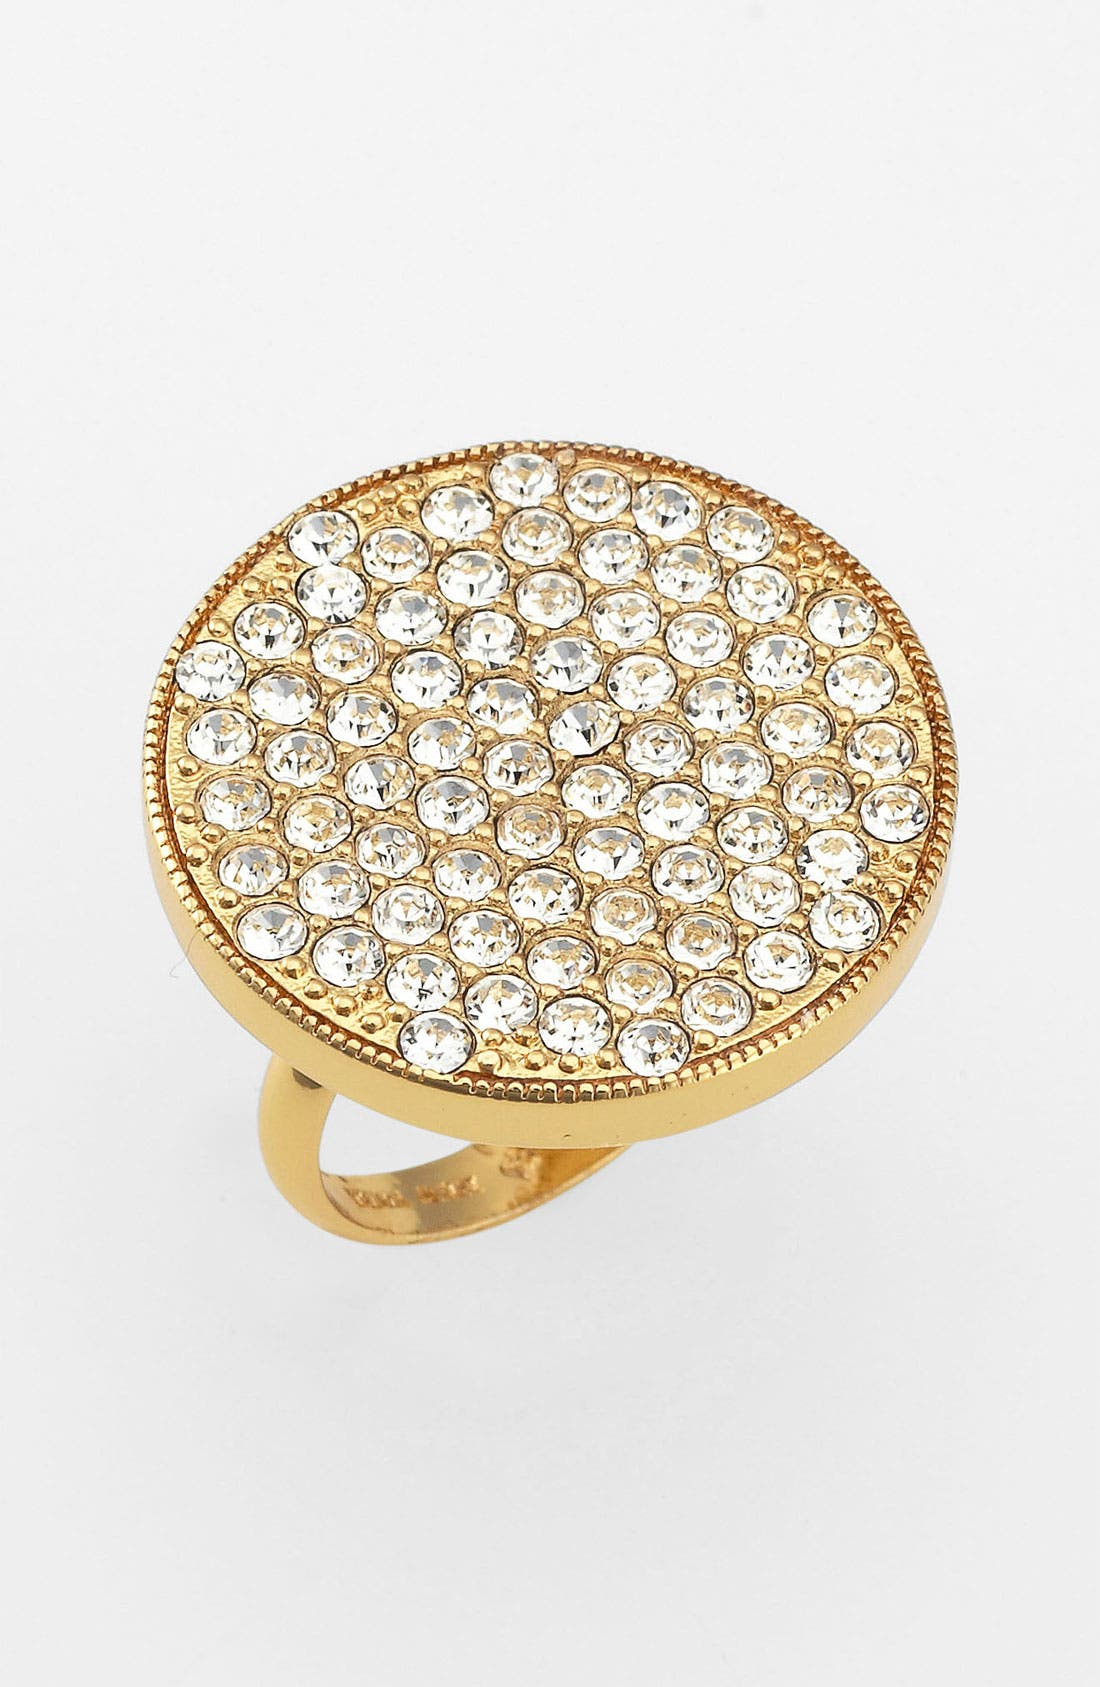 Alternate Image 1 Selected - kate spade new york 'bright spot' cocktail ring